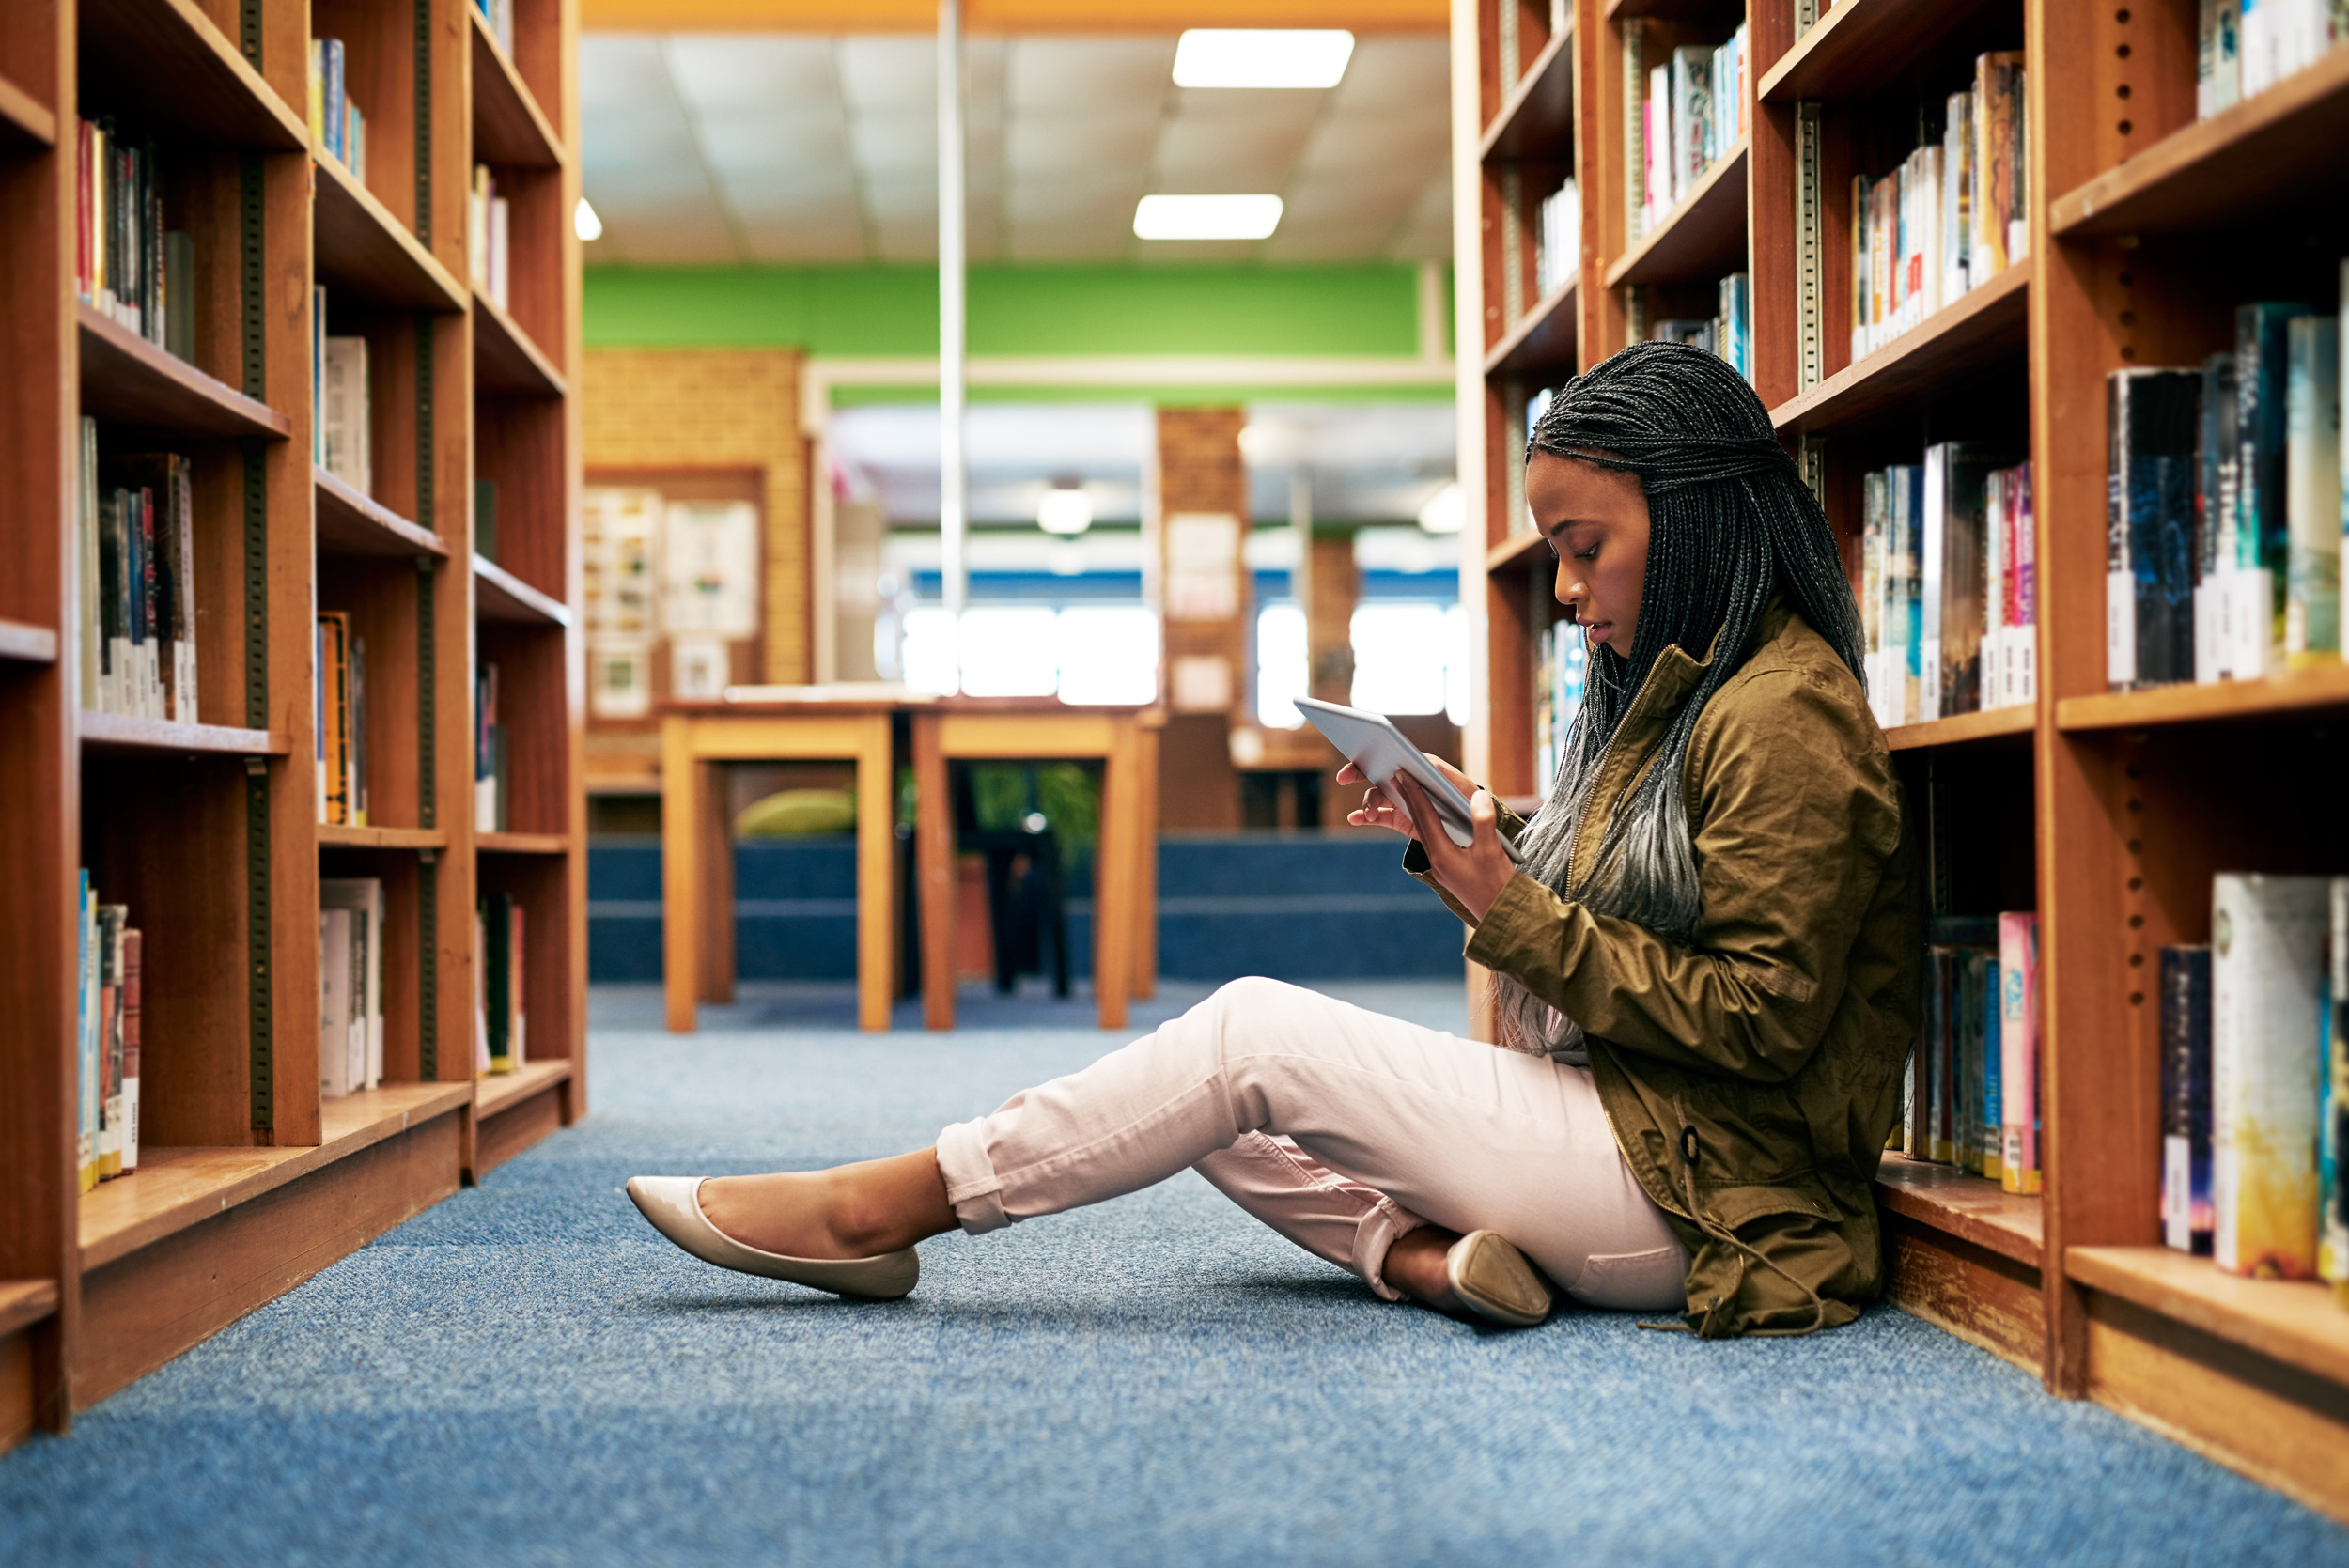 A black student sits between shelves at a campus library reading on a tablet